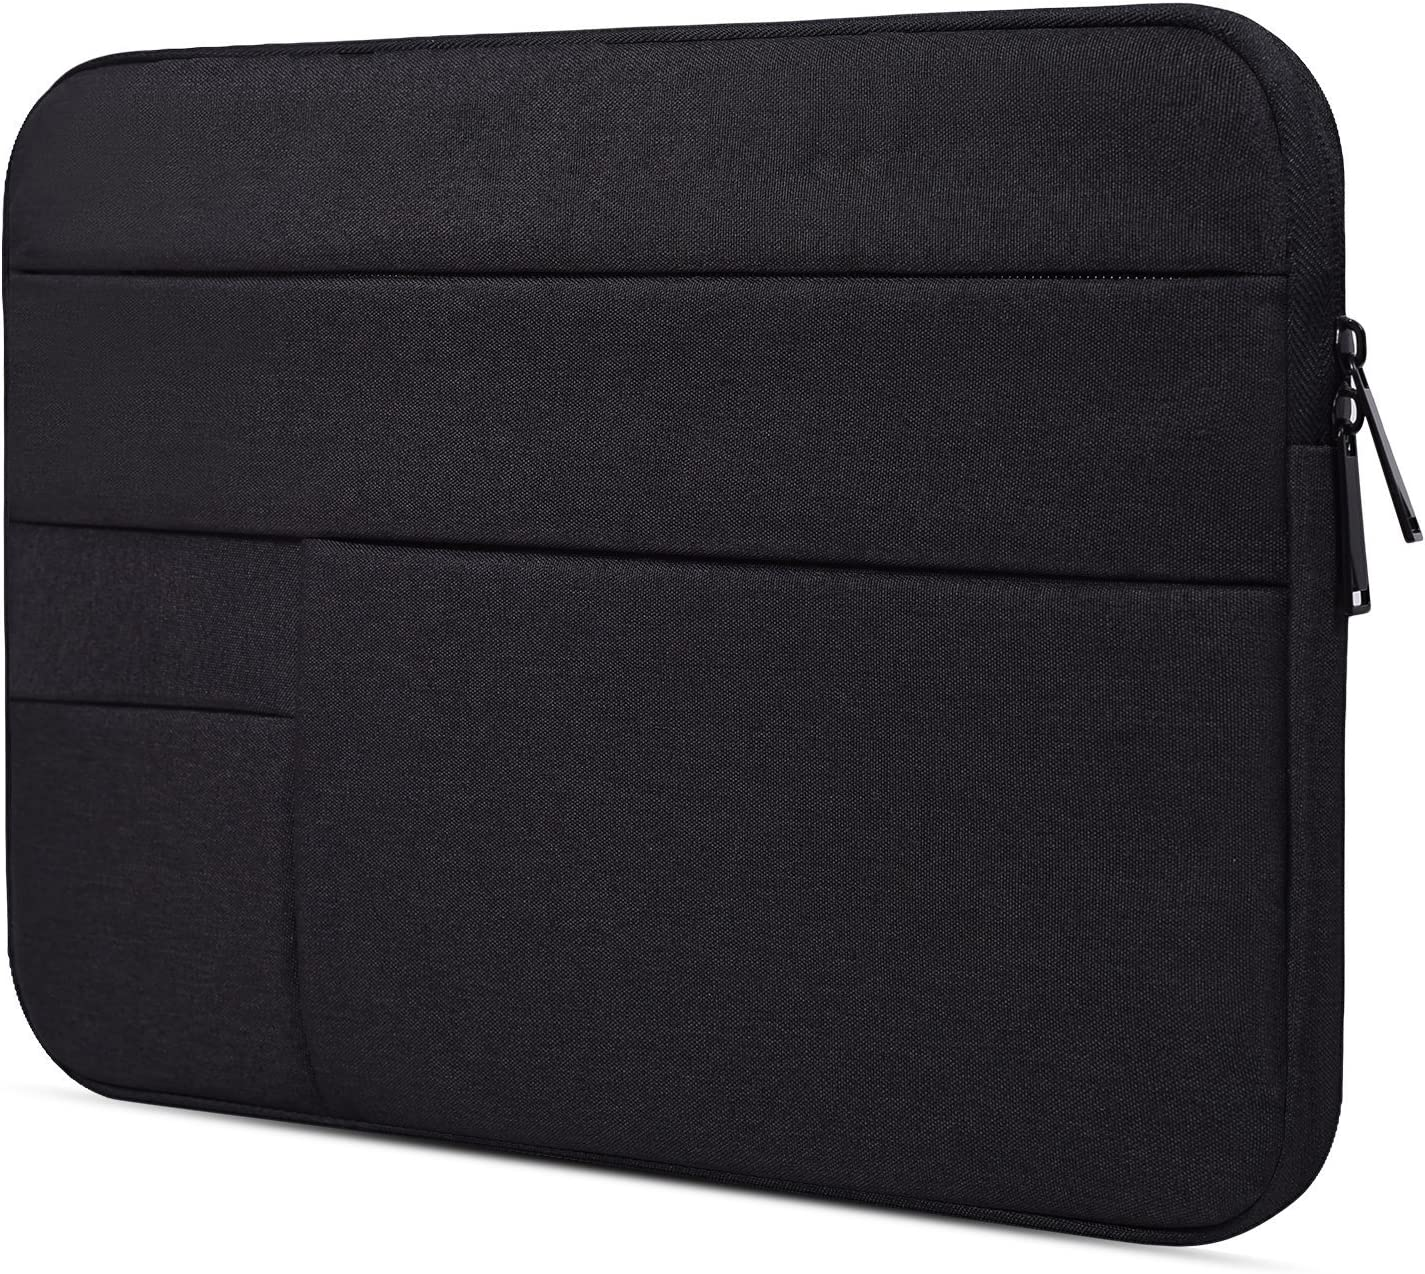 "12.3-13.3 Inch Waterproof Laptop Sleeve Case for Google Pixelbook, 12.5"" ASUS Chromebook Flip C302CA, Samsung Chromebook Plus/Pro, HP ASUS Samsung Lenovo Chromebook Tablet Bag, Black"